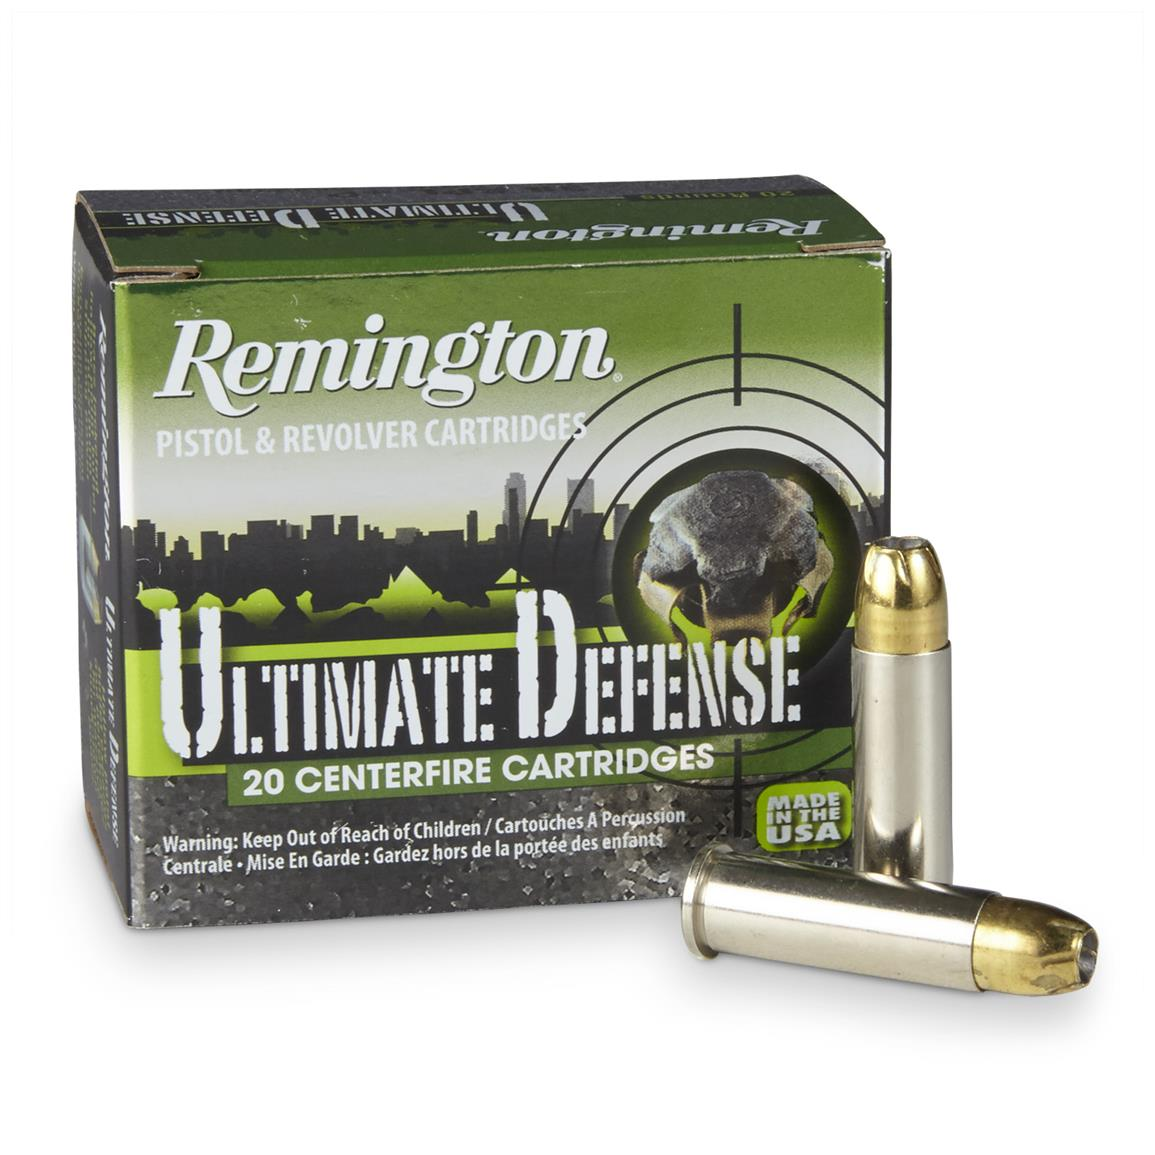 Remington, HD Ultimate Defense, .38 Special+P, BJHP, 125 Grain, 20 Rounds